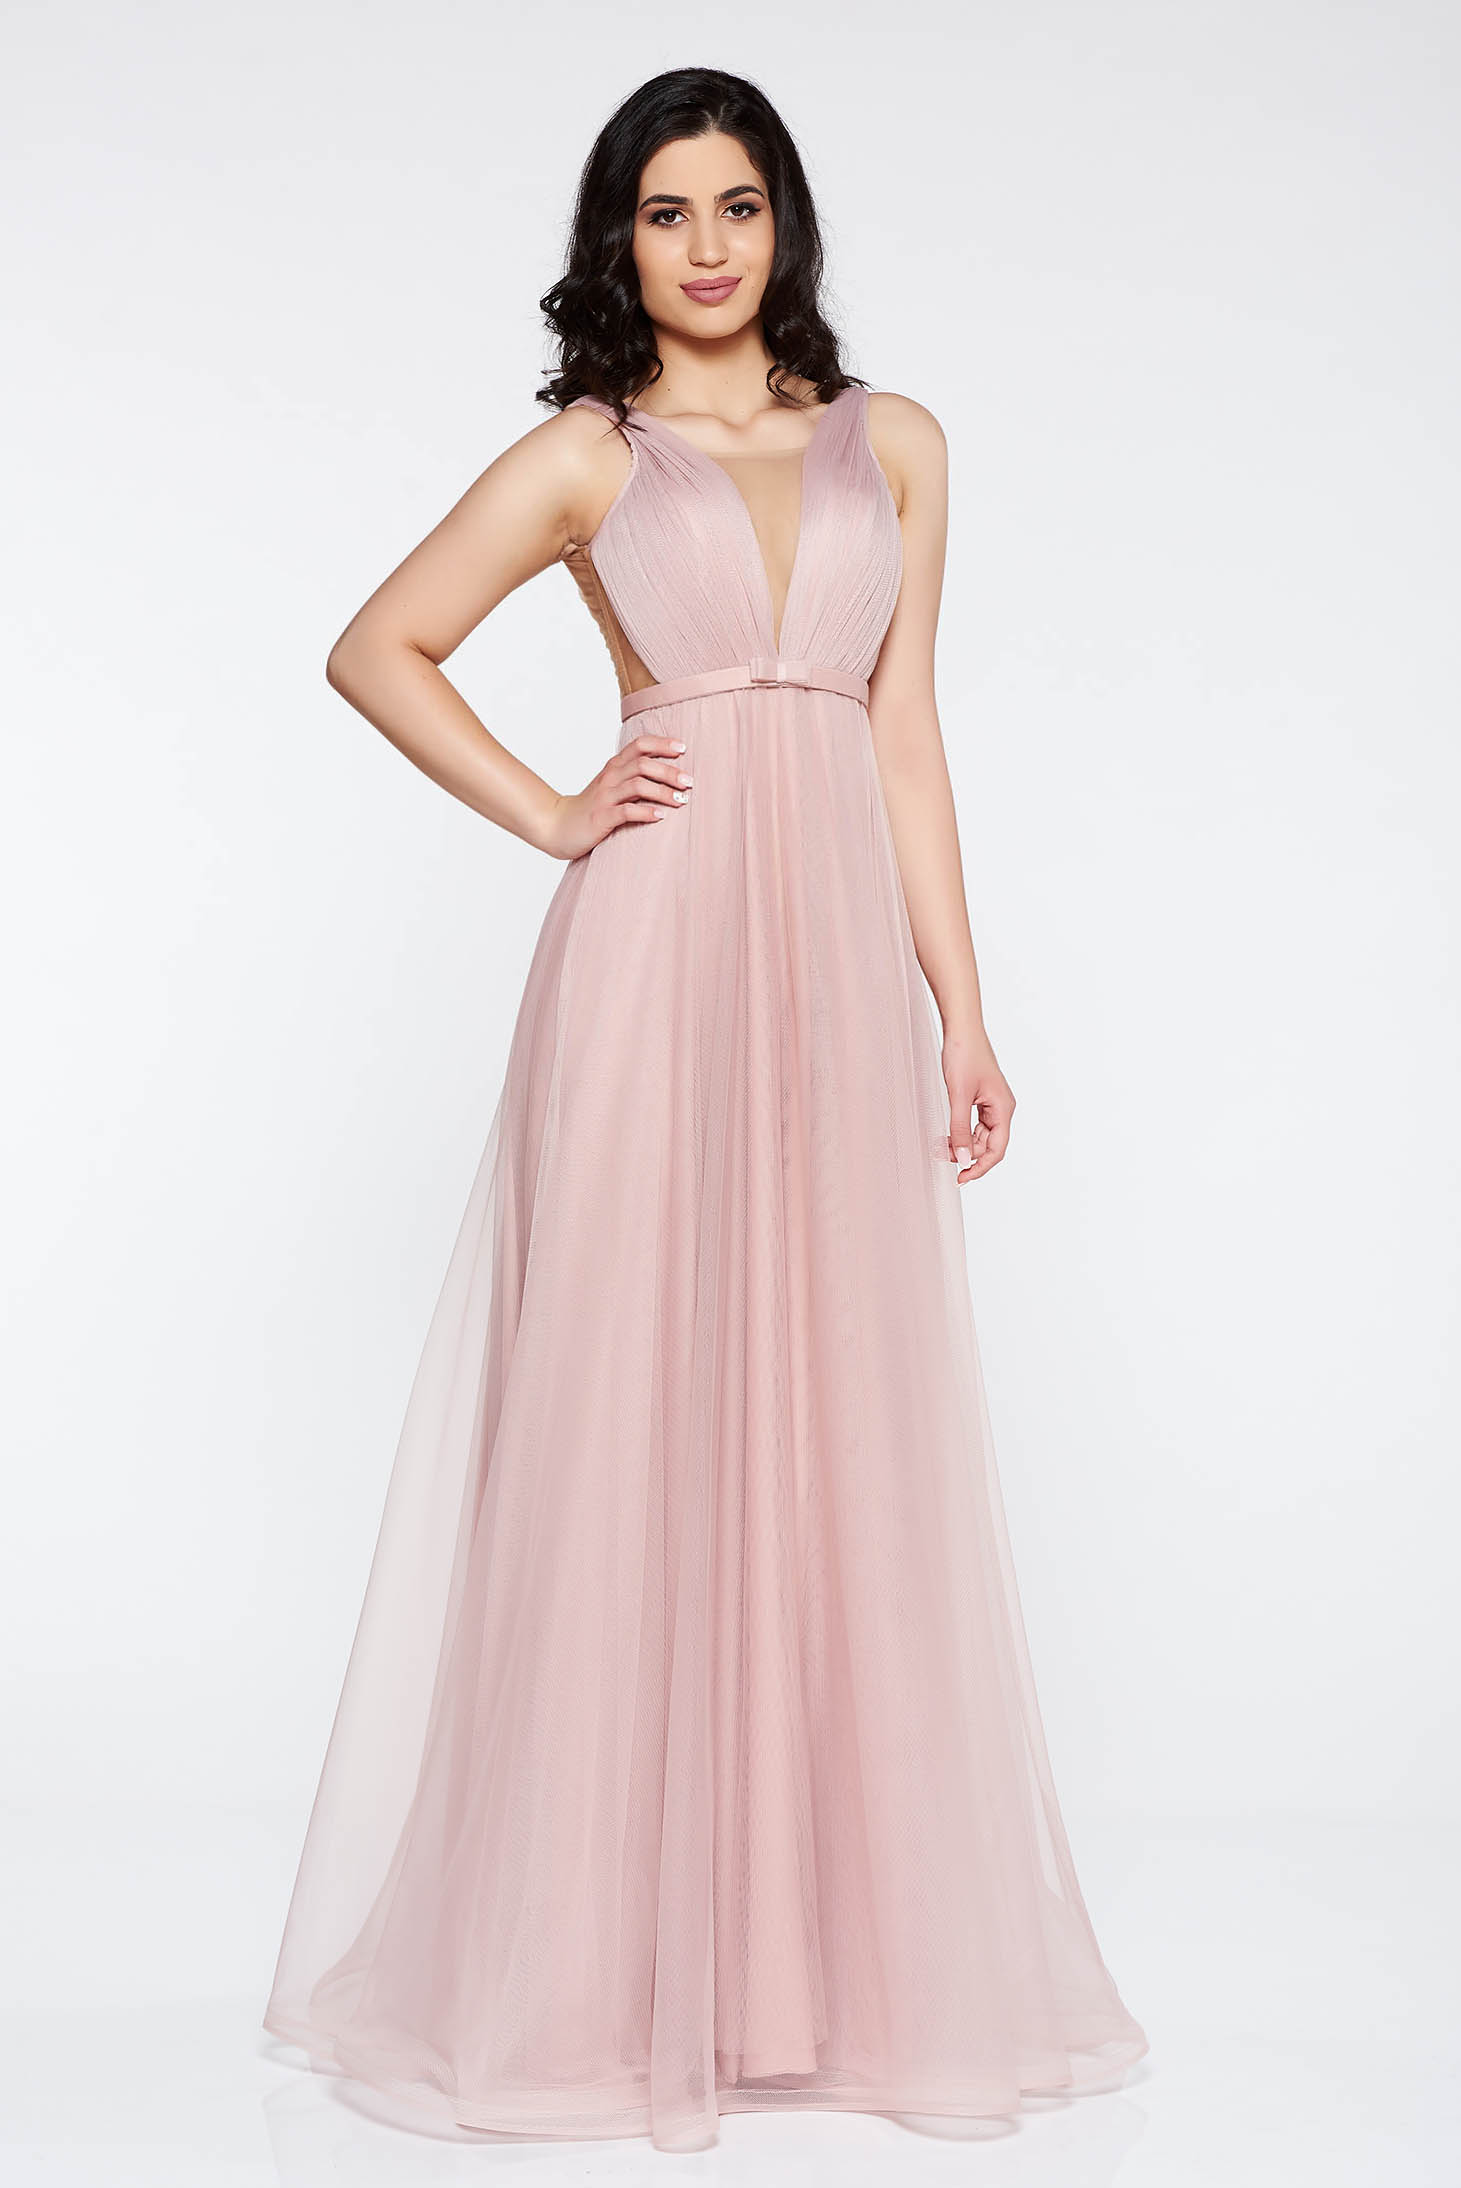 Ana Radu rosa dress accessorized with tied waistband from tulle with deep cleavage with inside lining luxurious